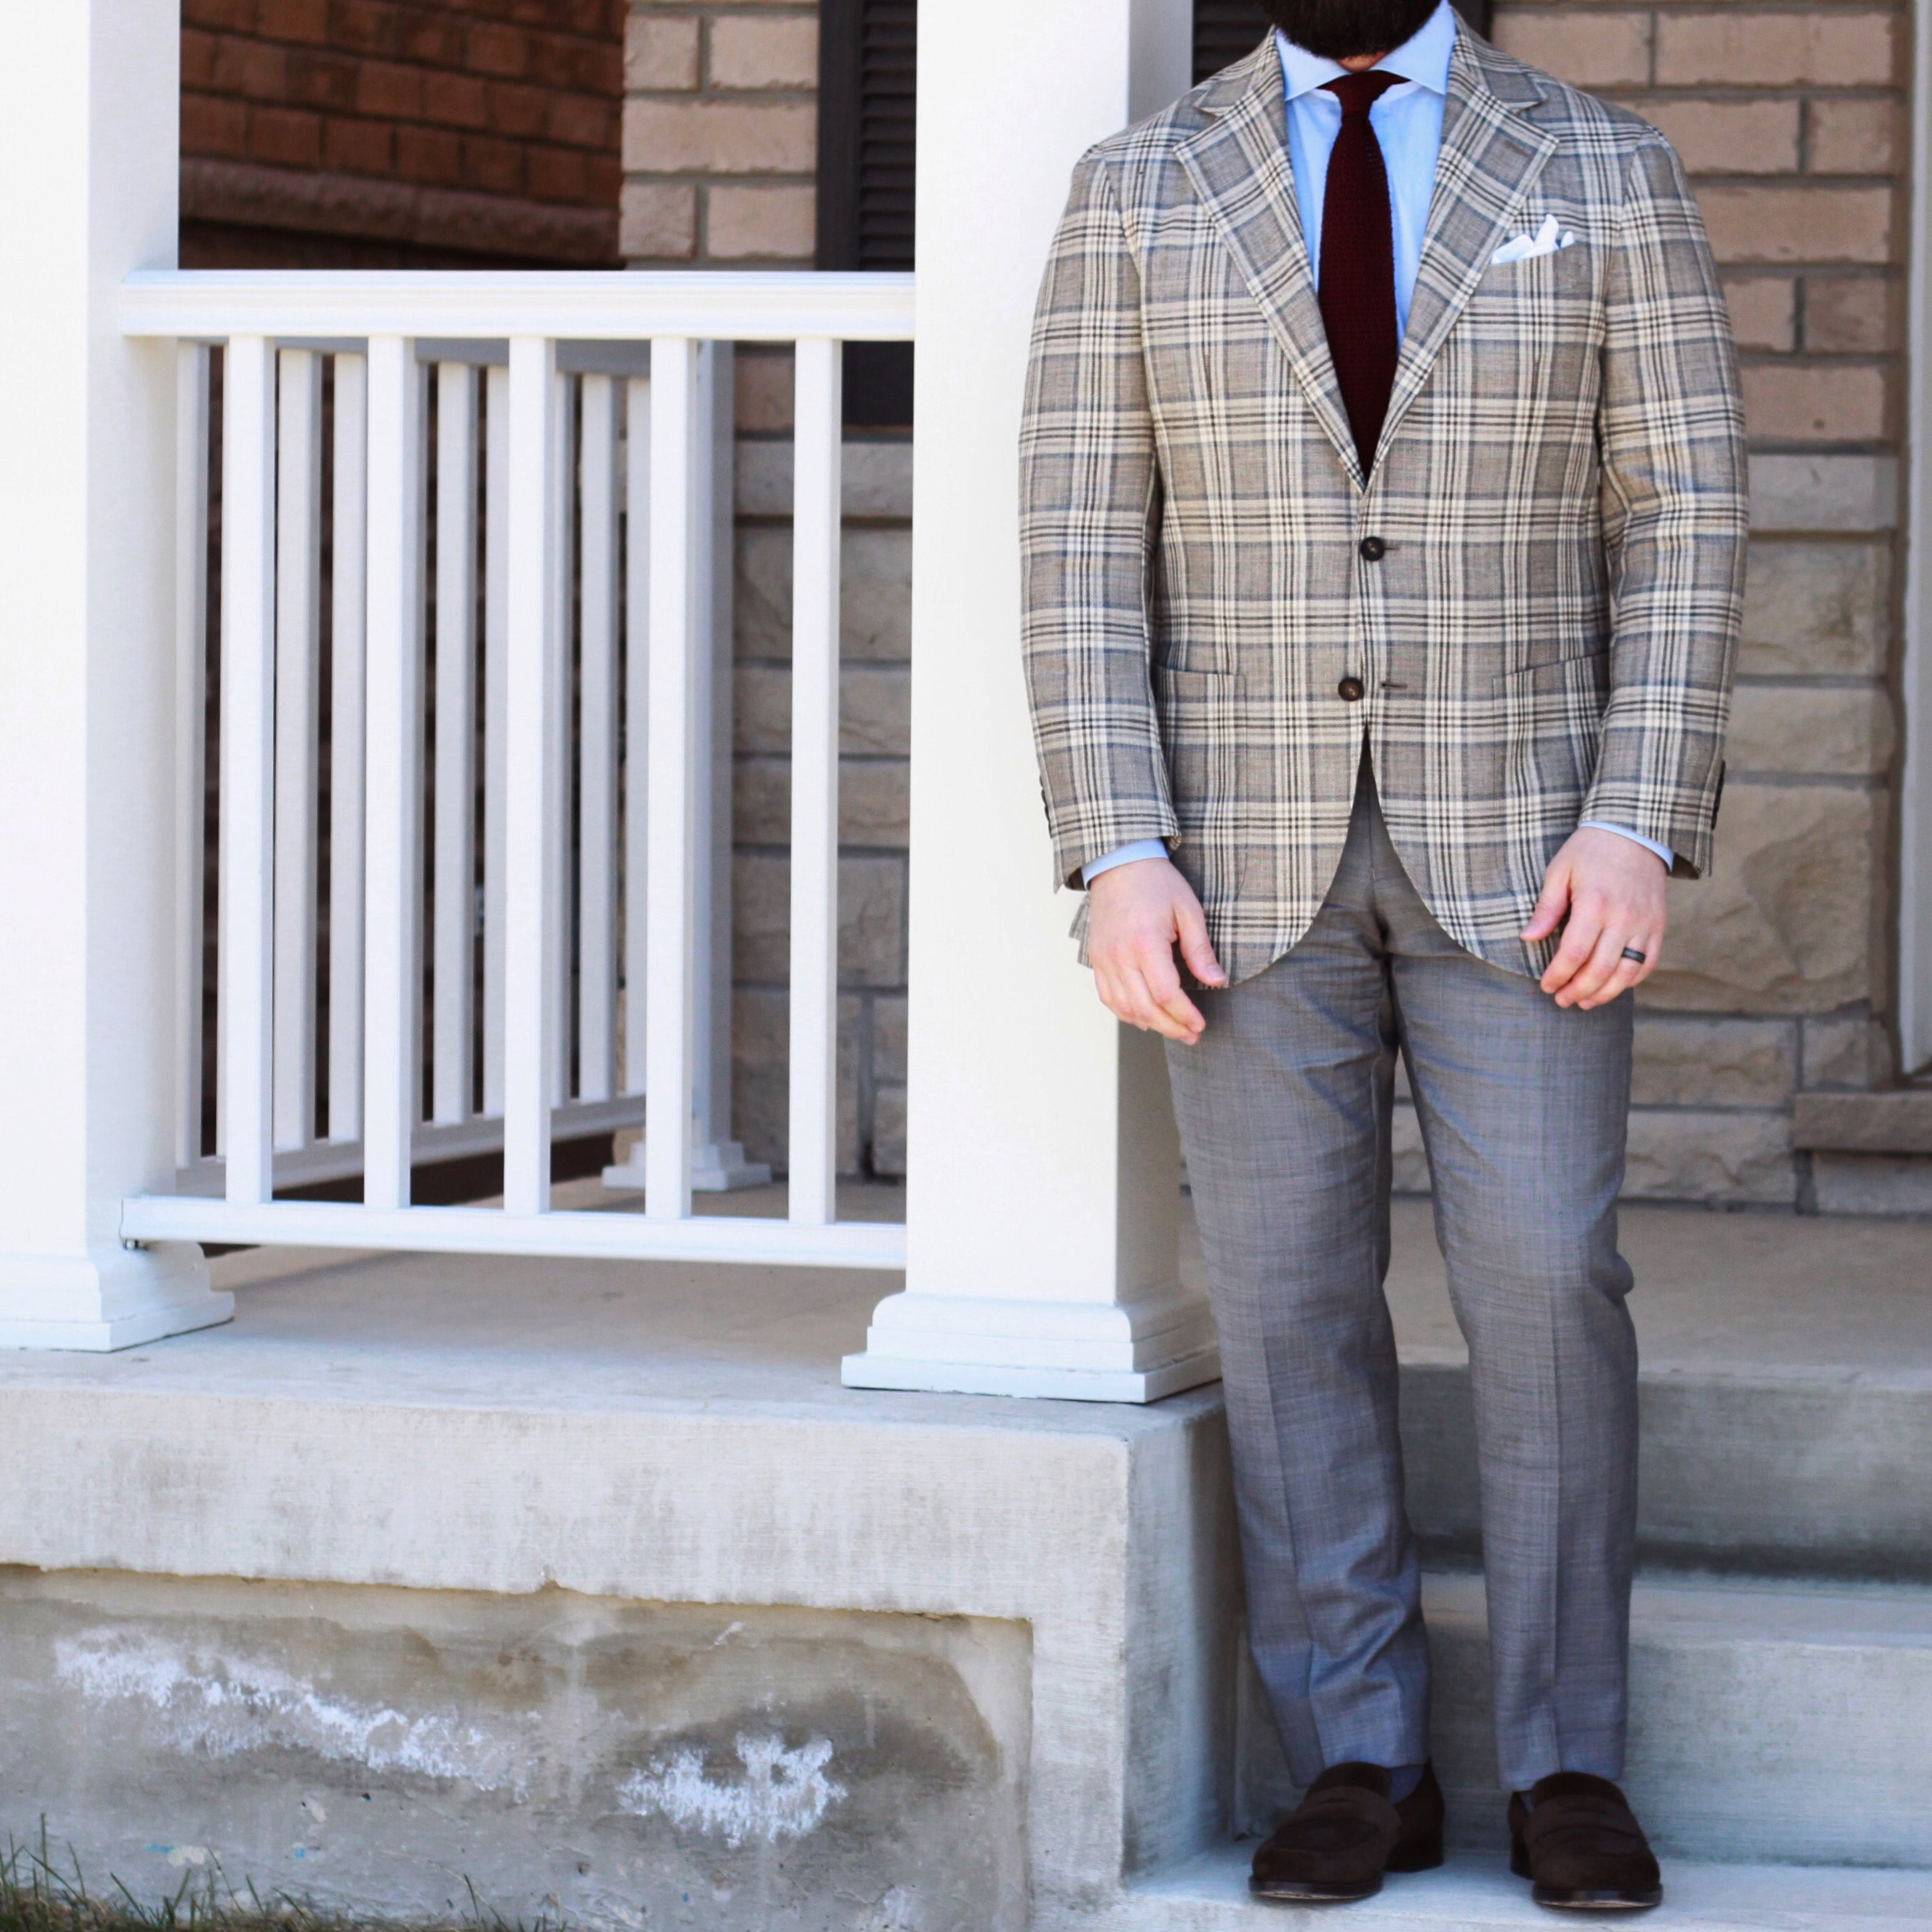 sport coat, spring/summer, pattern, afterthesuit, spier mackay, oxford rowe, what i wore